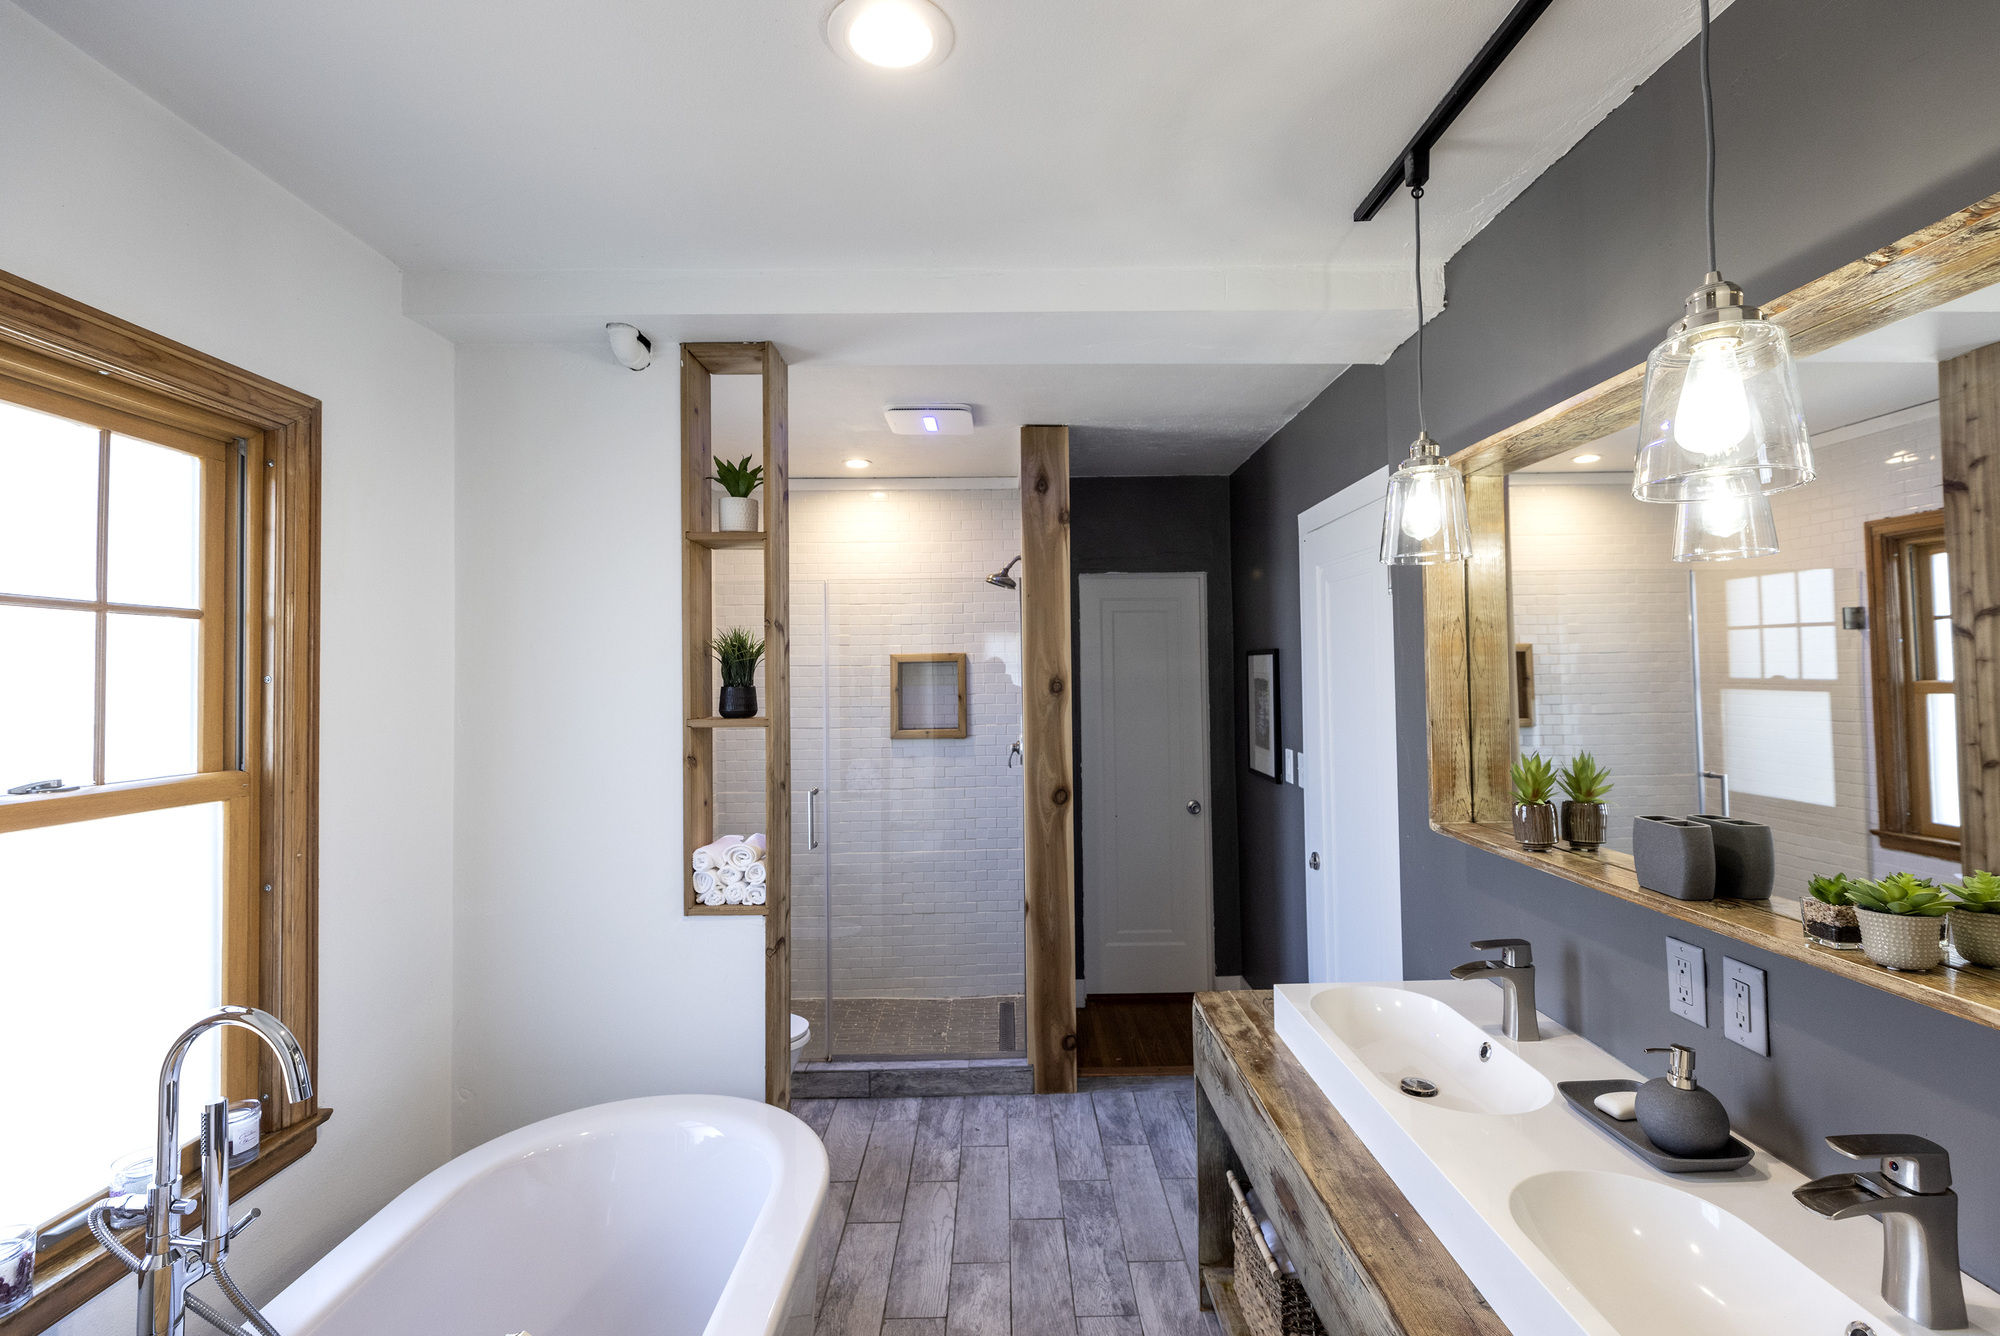 Remodeled bathroom at St. Paul the home of Wale Falade and Funmi Okanla-Falade.